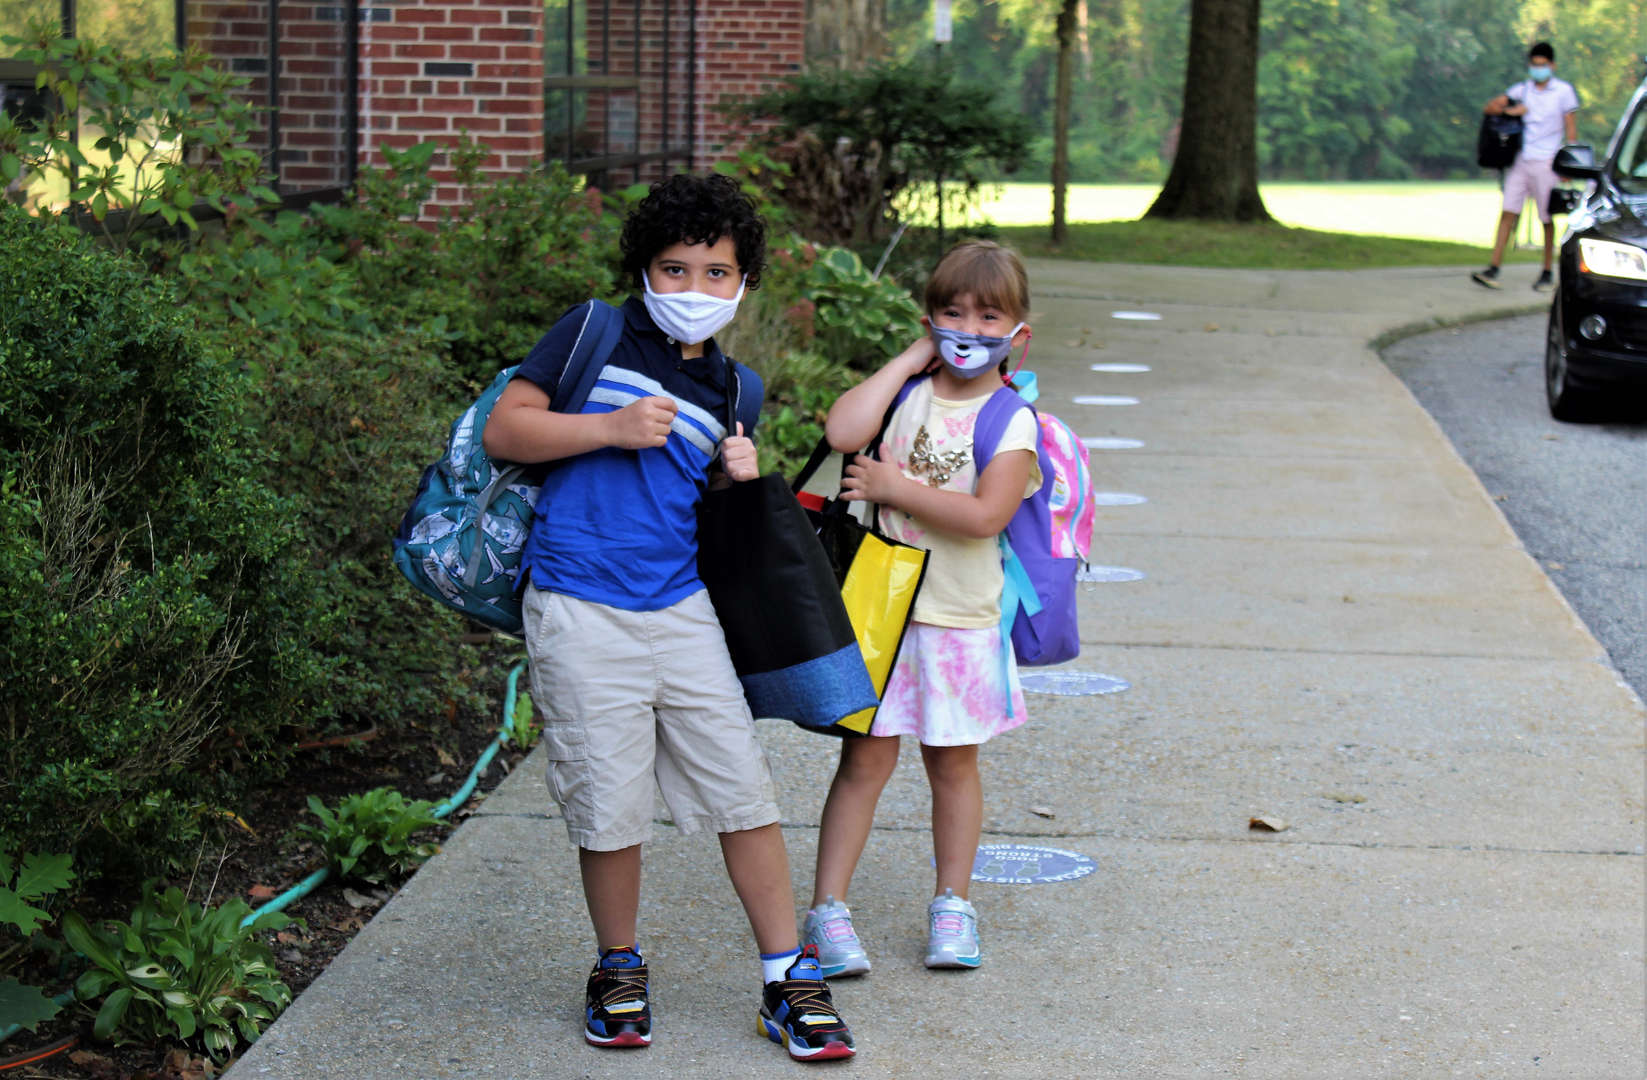 A brother and sister pause for a photo while walking into school the first day.